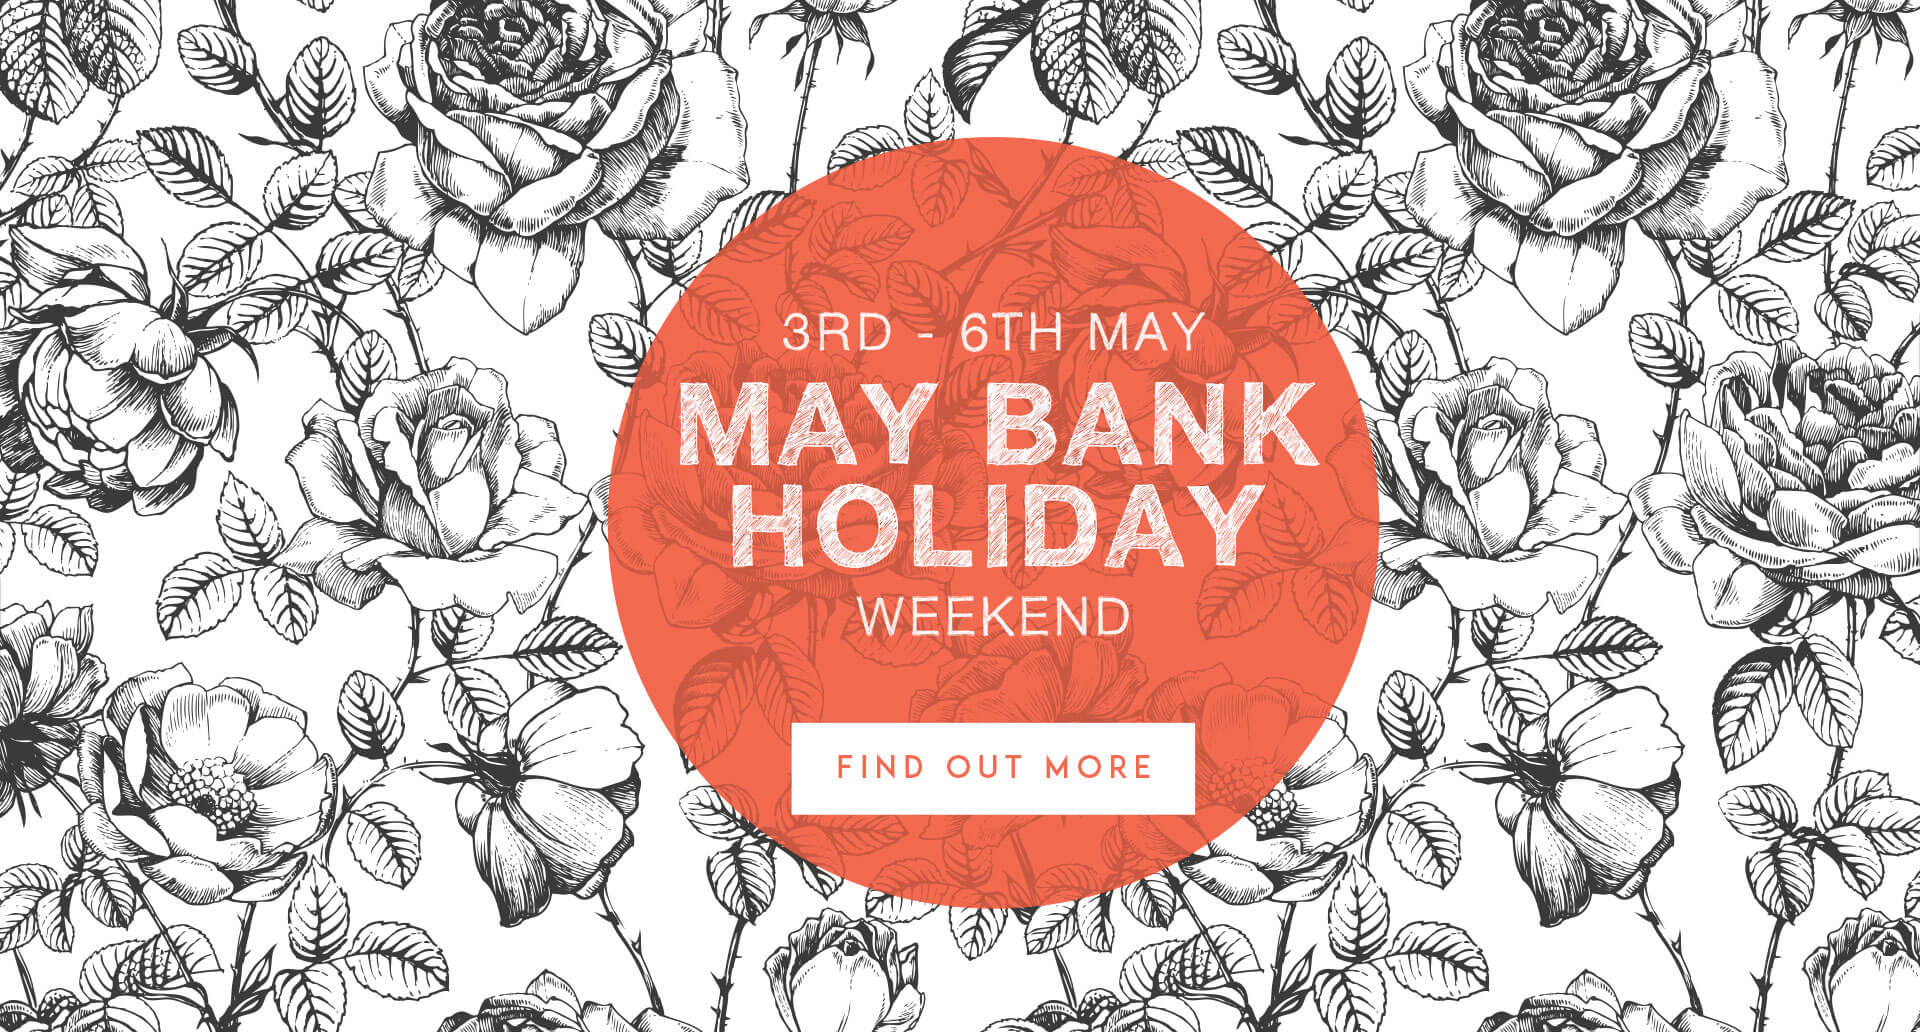 May Bank Holiday at The Royal Oak